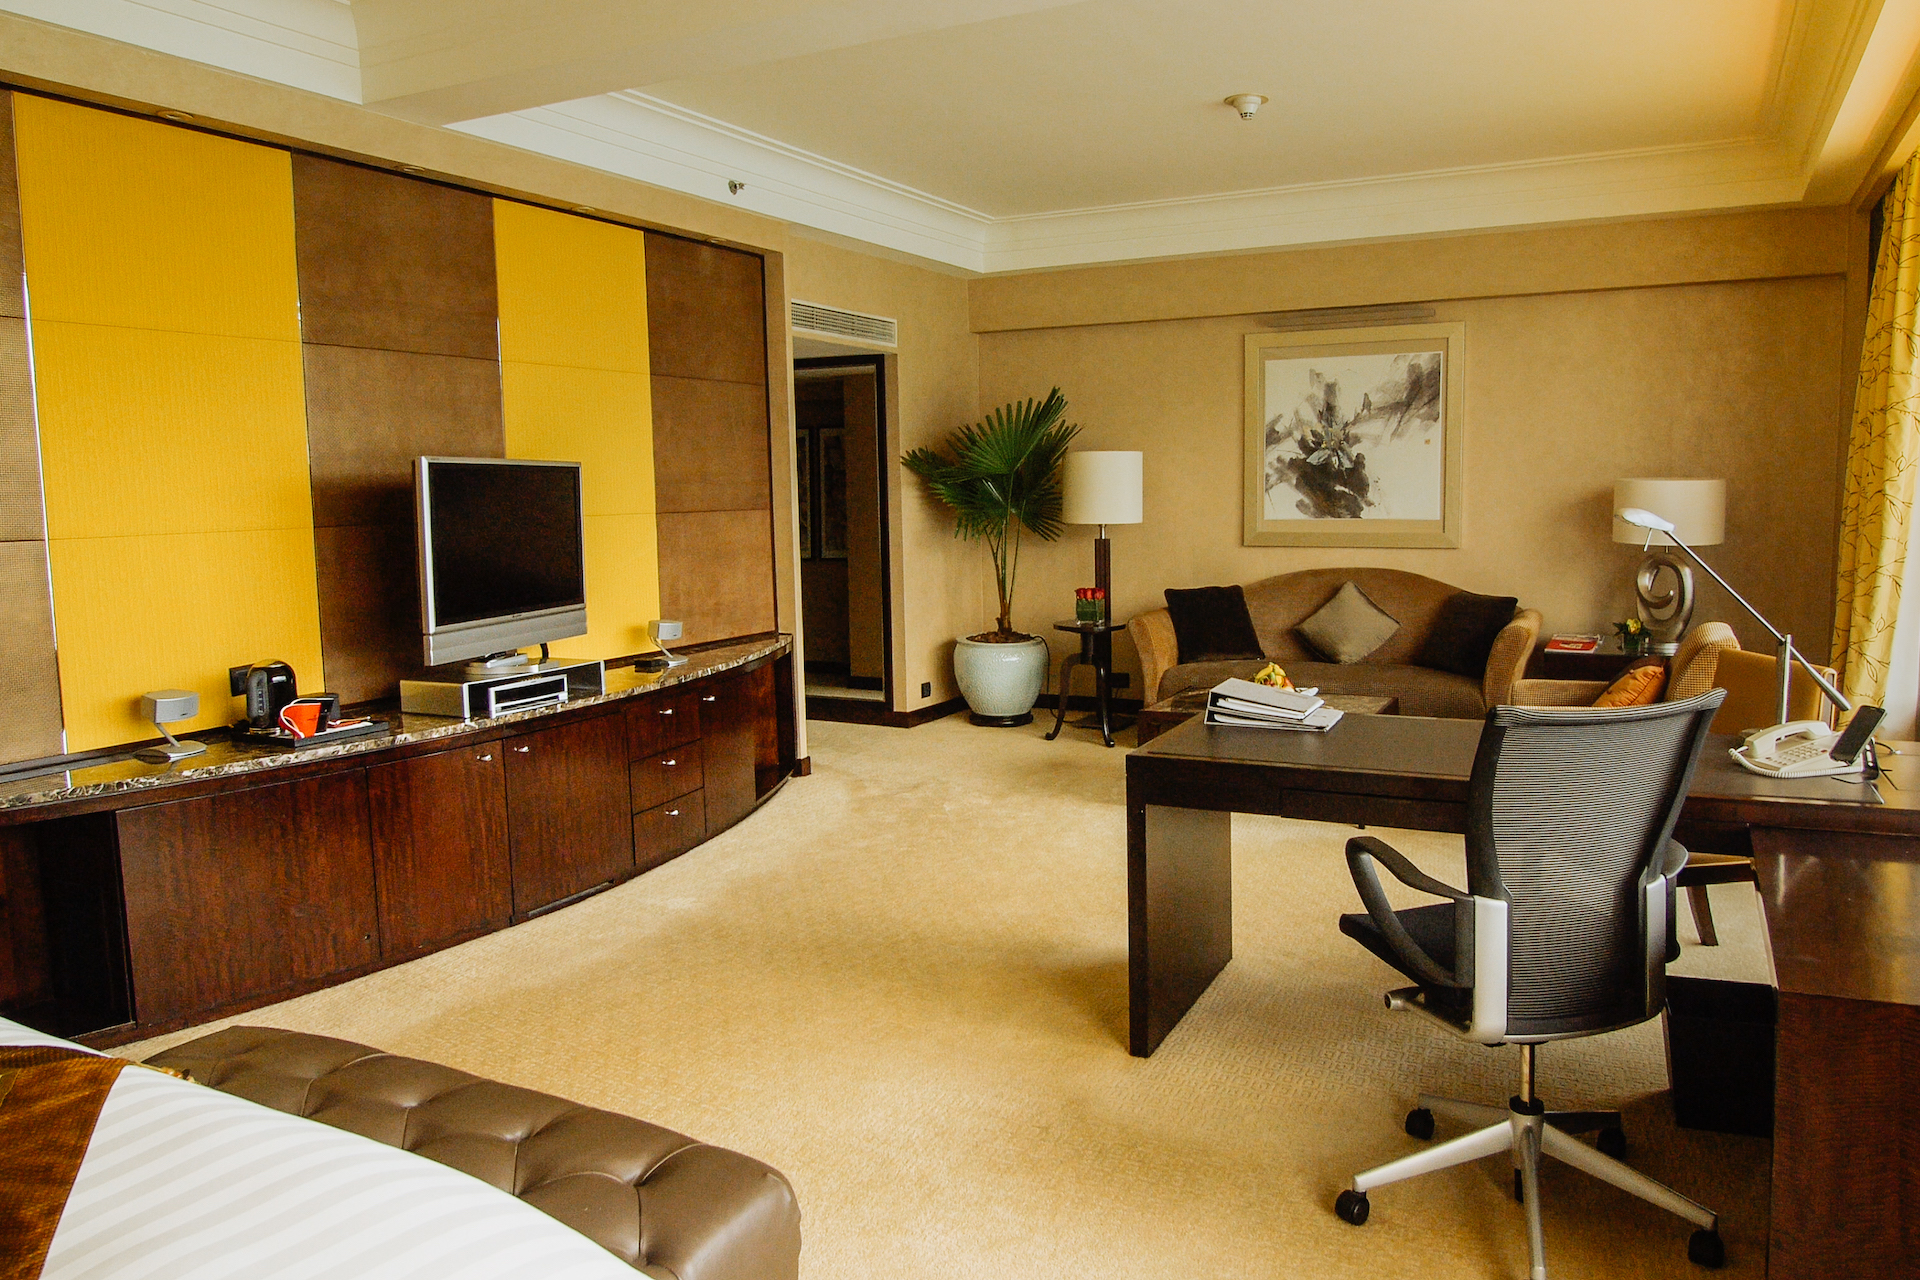 InterContinental Room Lounge Wide (Day)